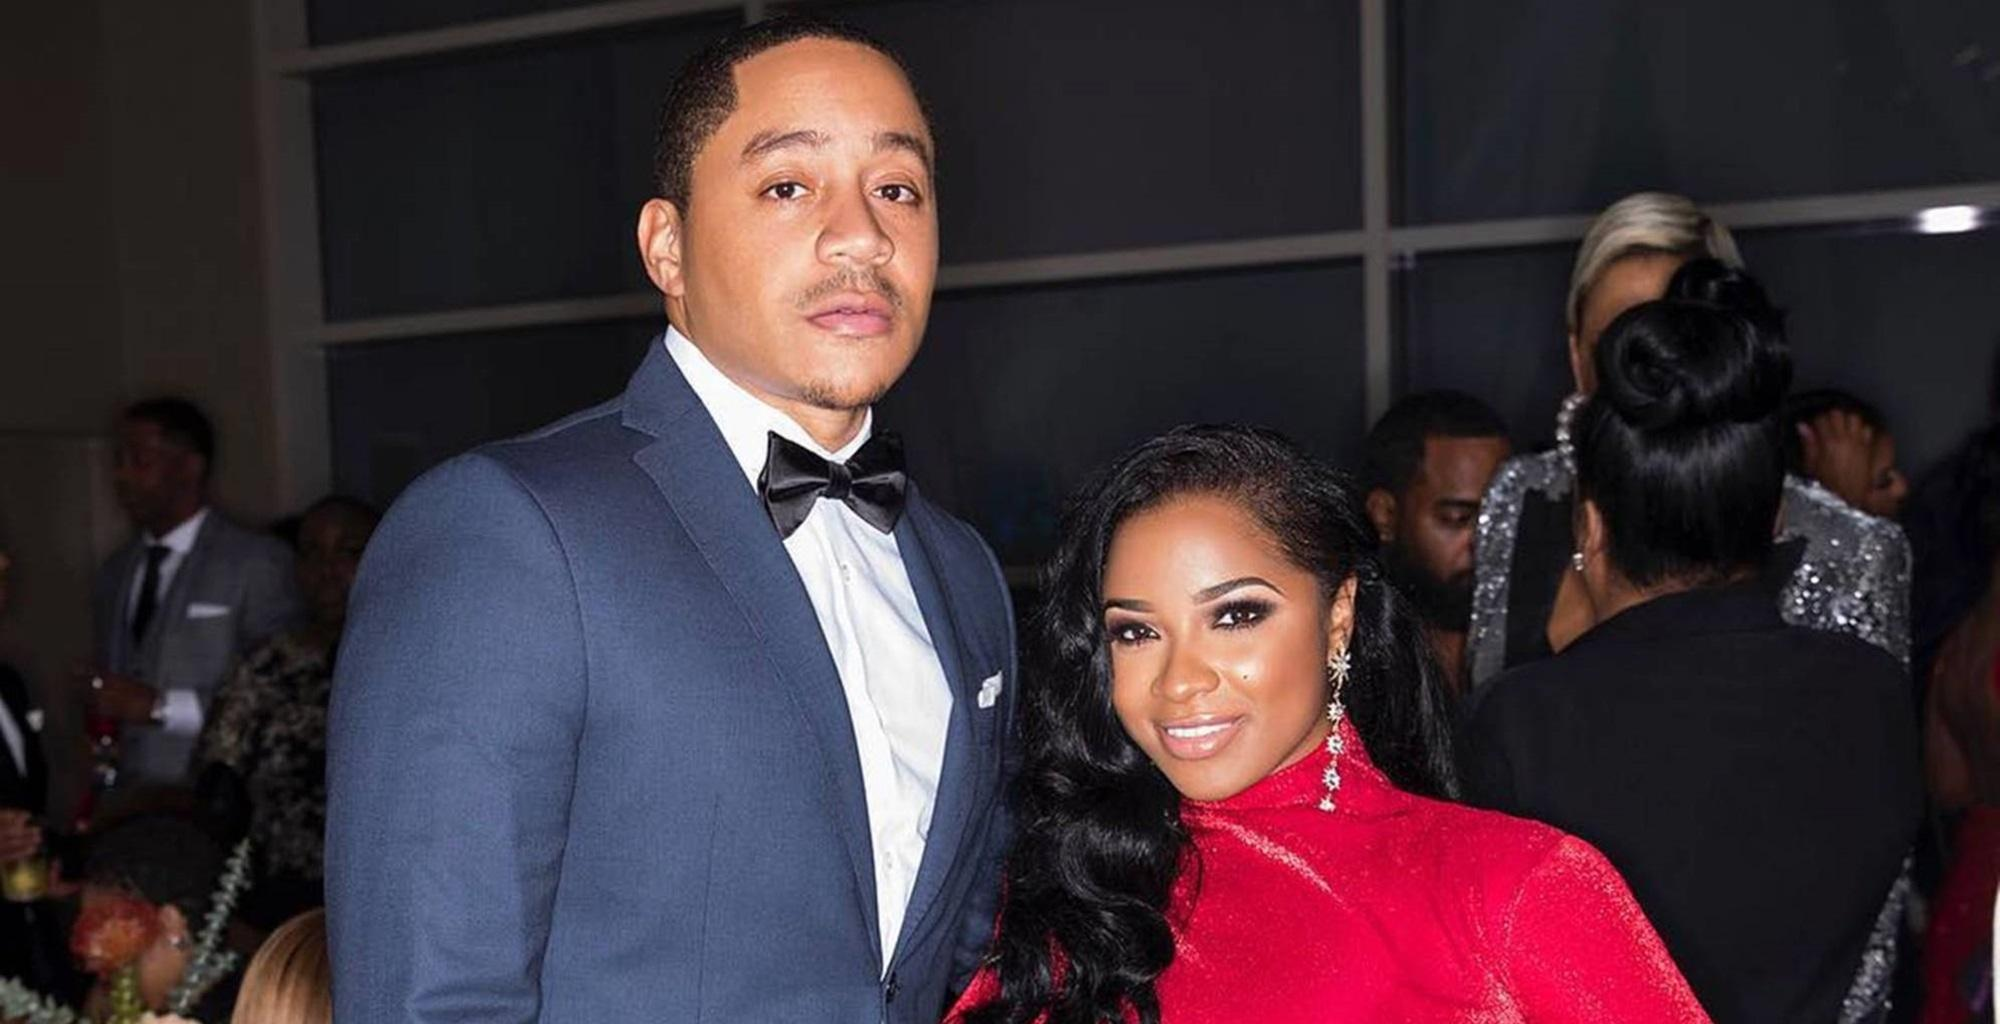 Toya Johnson Shares A Photo With Robert Rushing In Which She's Flaunting Her Natural Hair And Fans Are In Awe